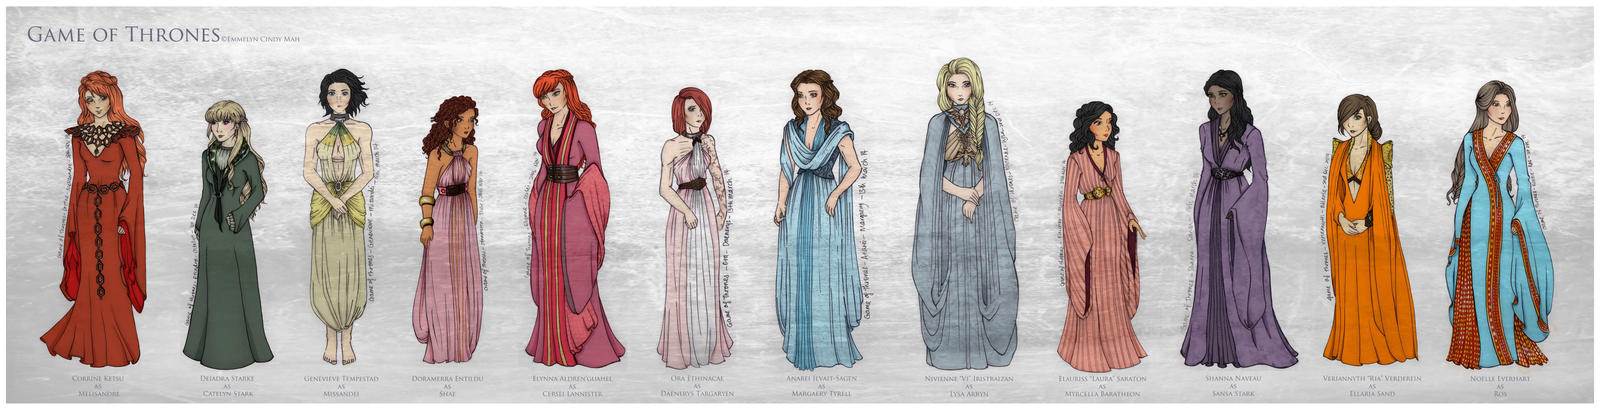 Costume Project - Game of Thrones